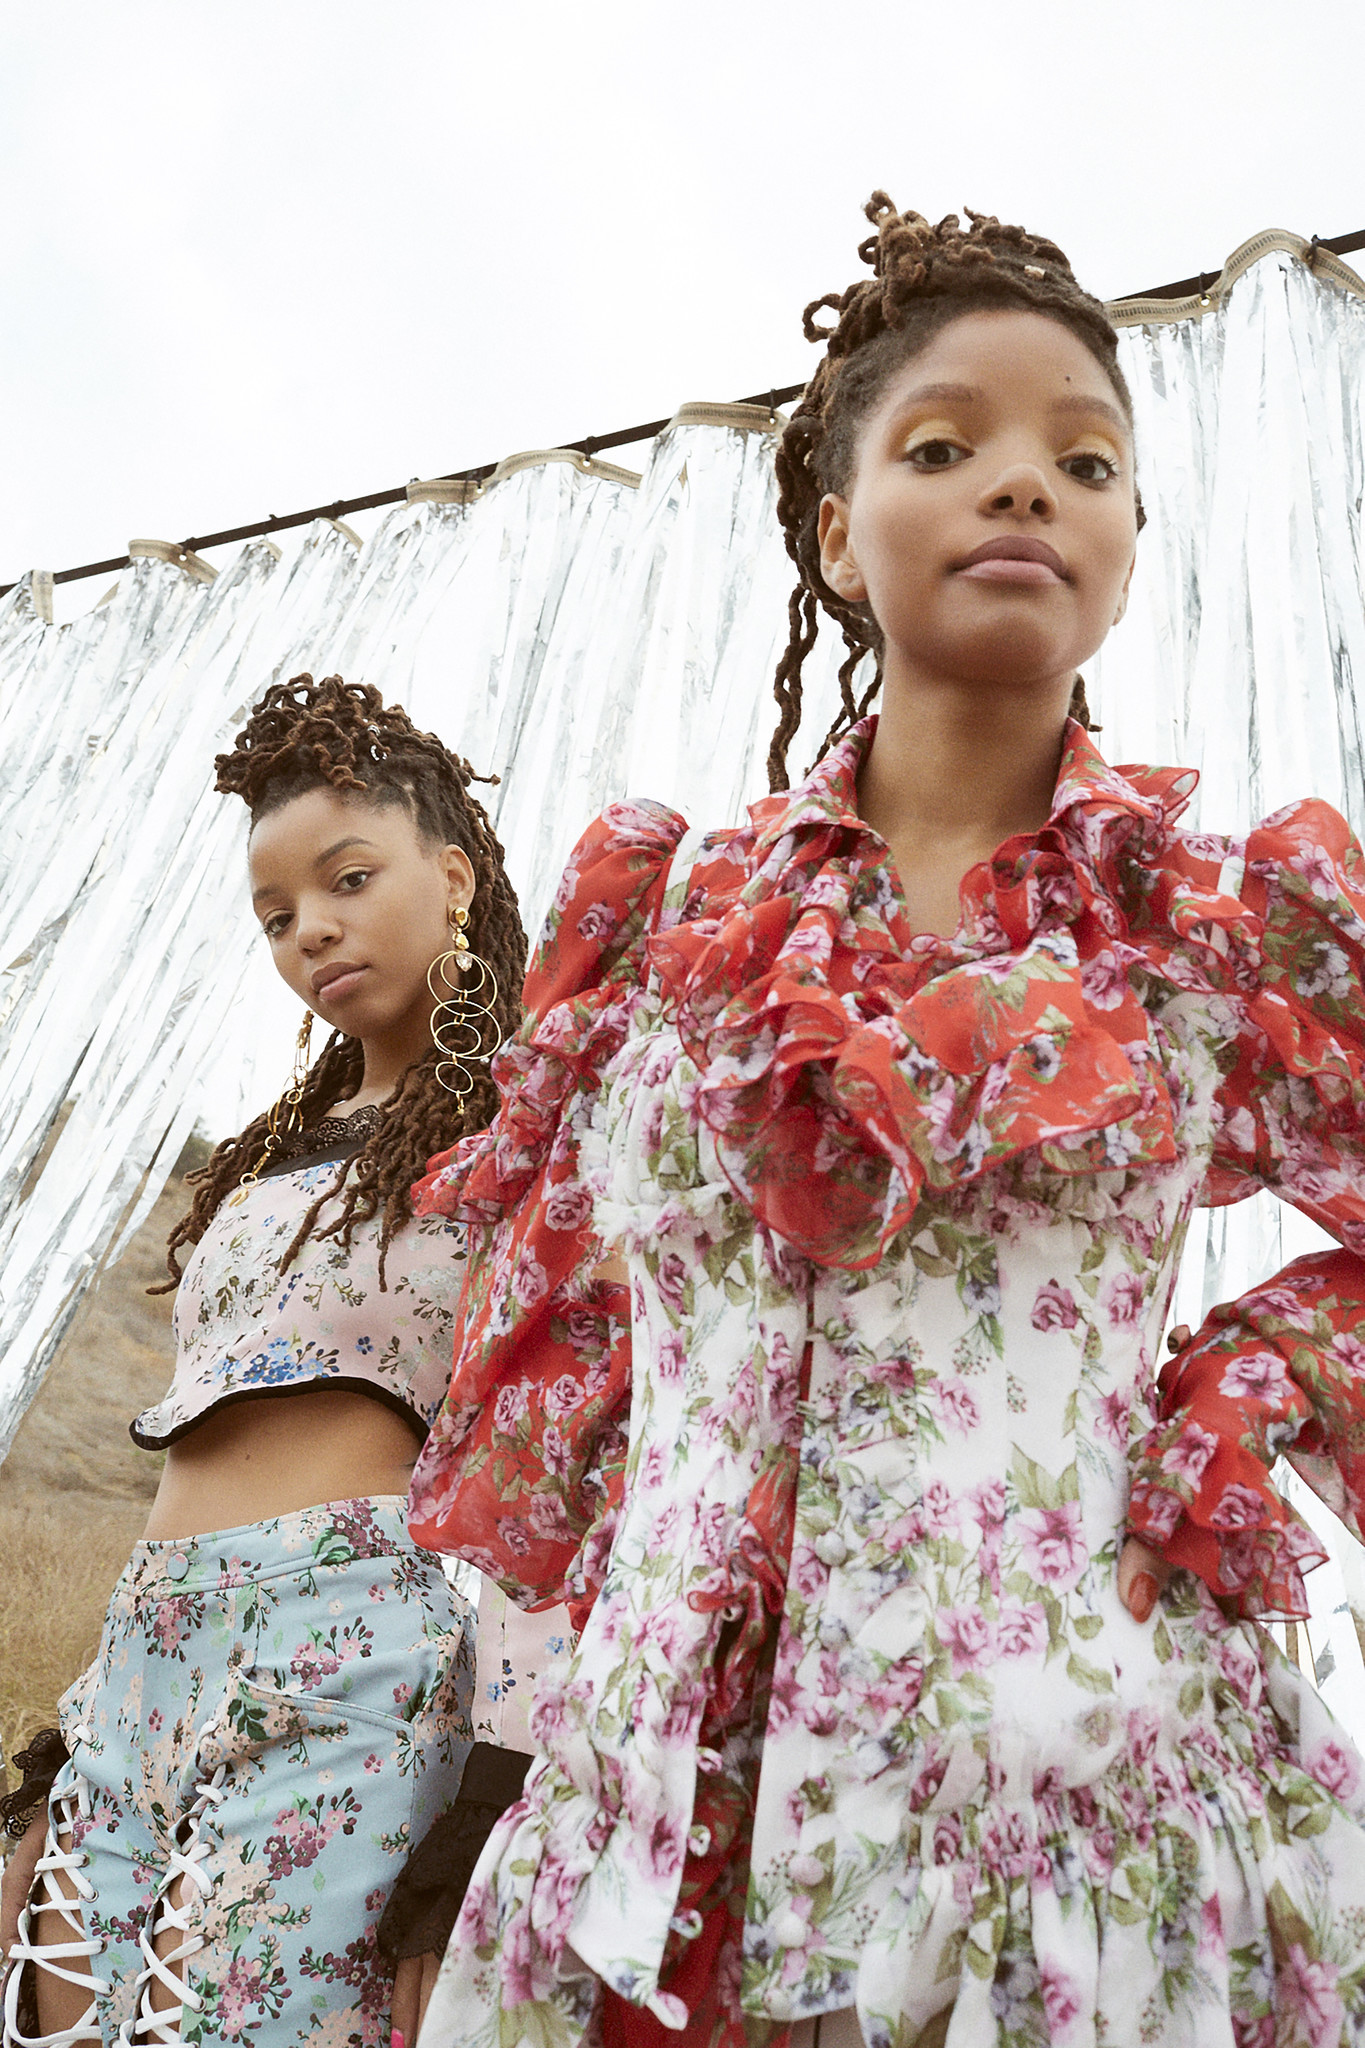 Halle and Chloe Bailey, sisters that make up the R&B duo Chloe X Halle. Credit: Robin Harper